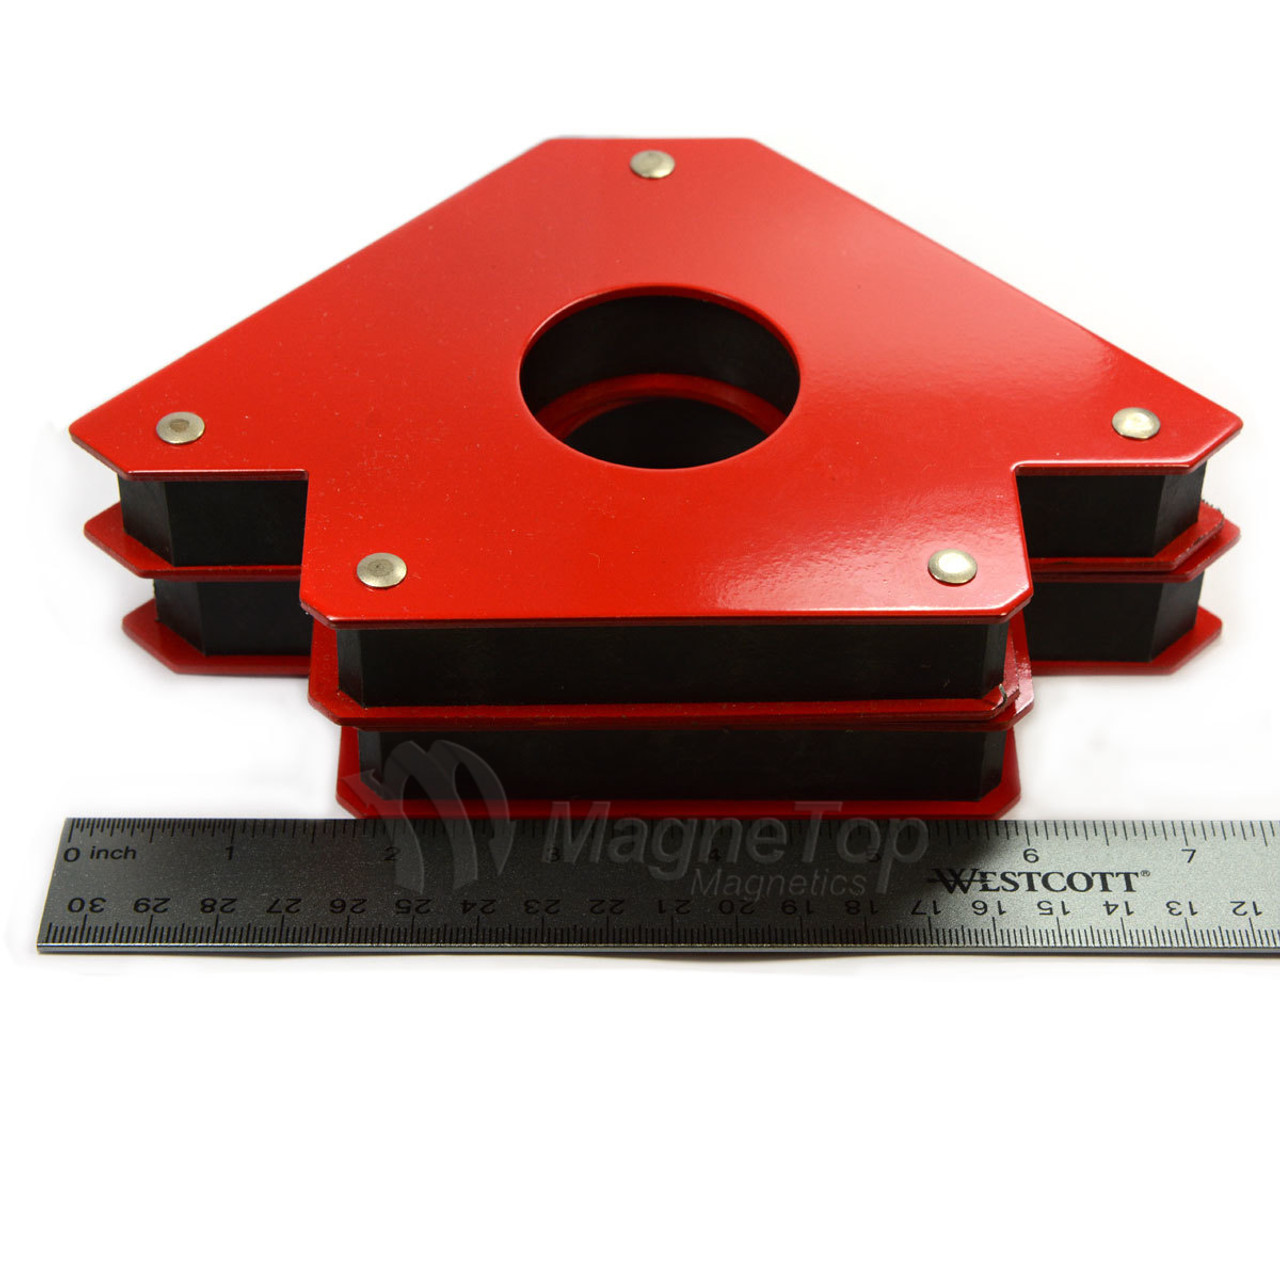 34kg (75lb) Magnetic Welding Holder